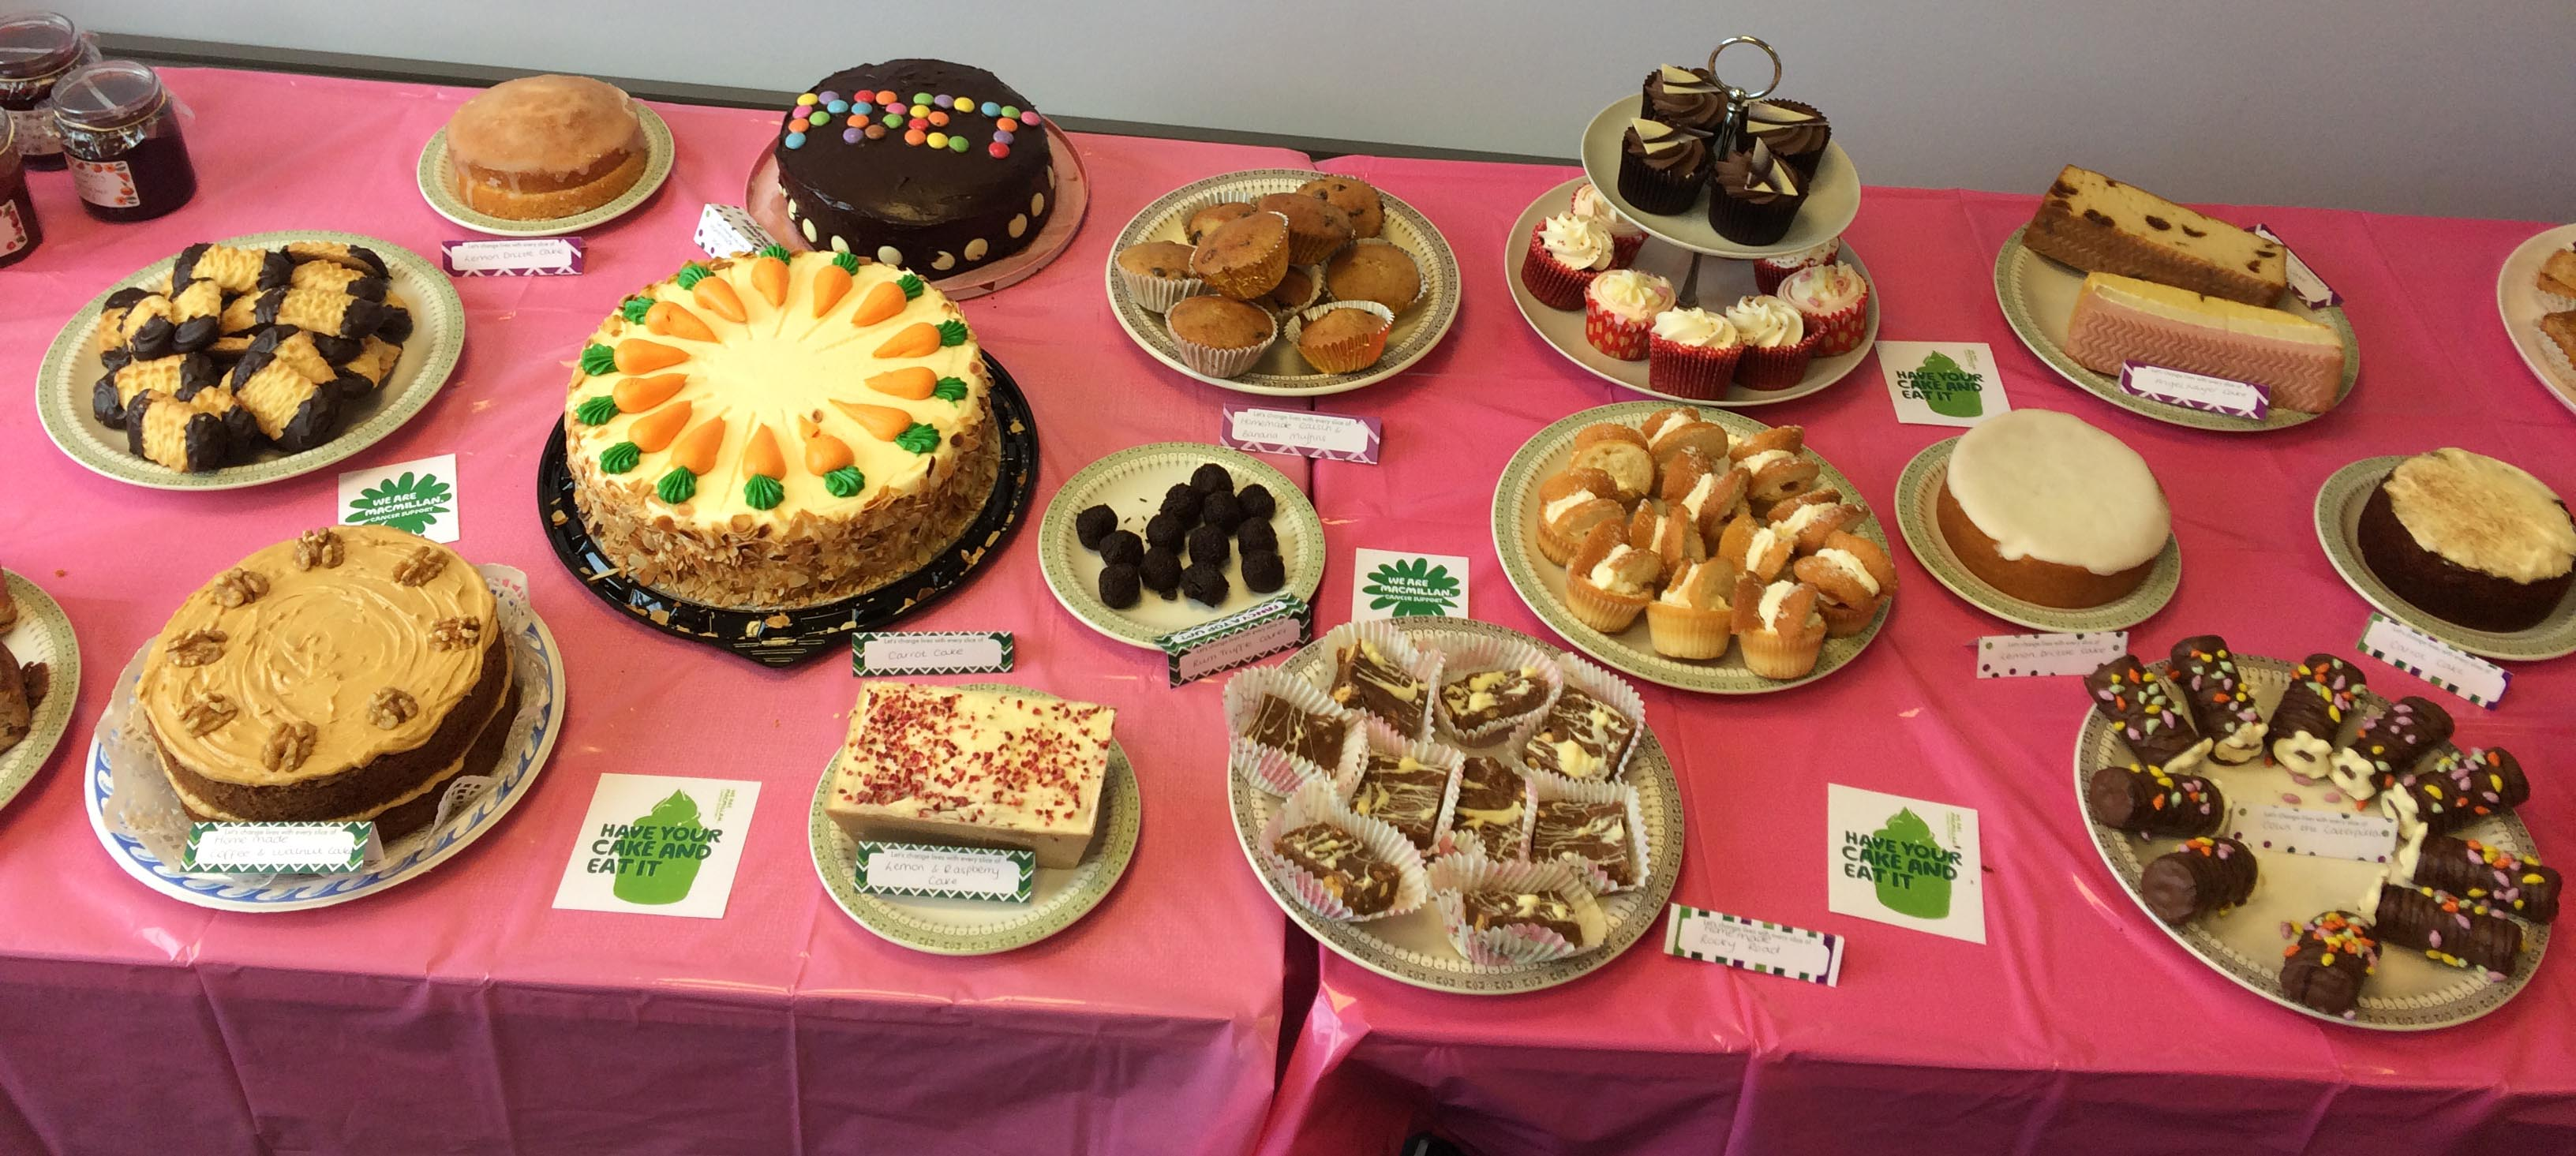 The World's Biggest Coffee Morning in Peterborough Diocese